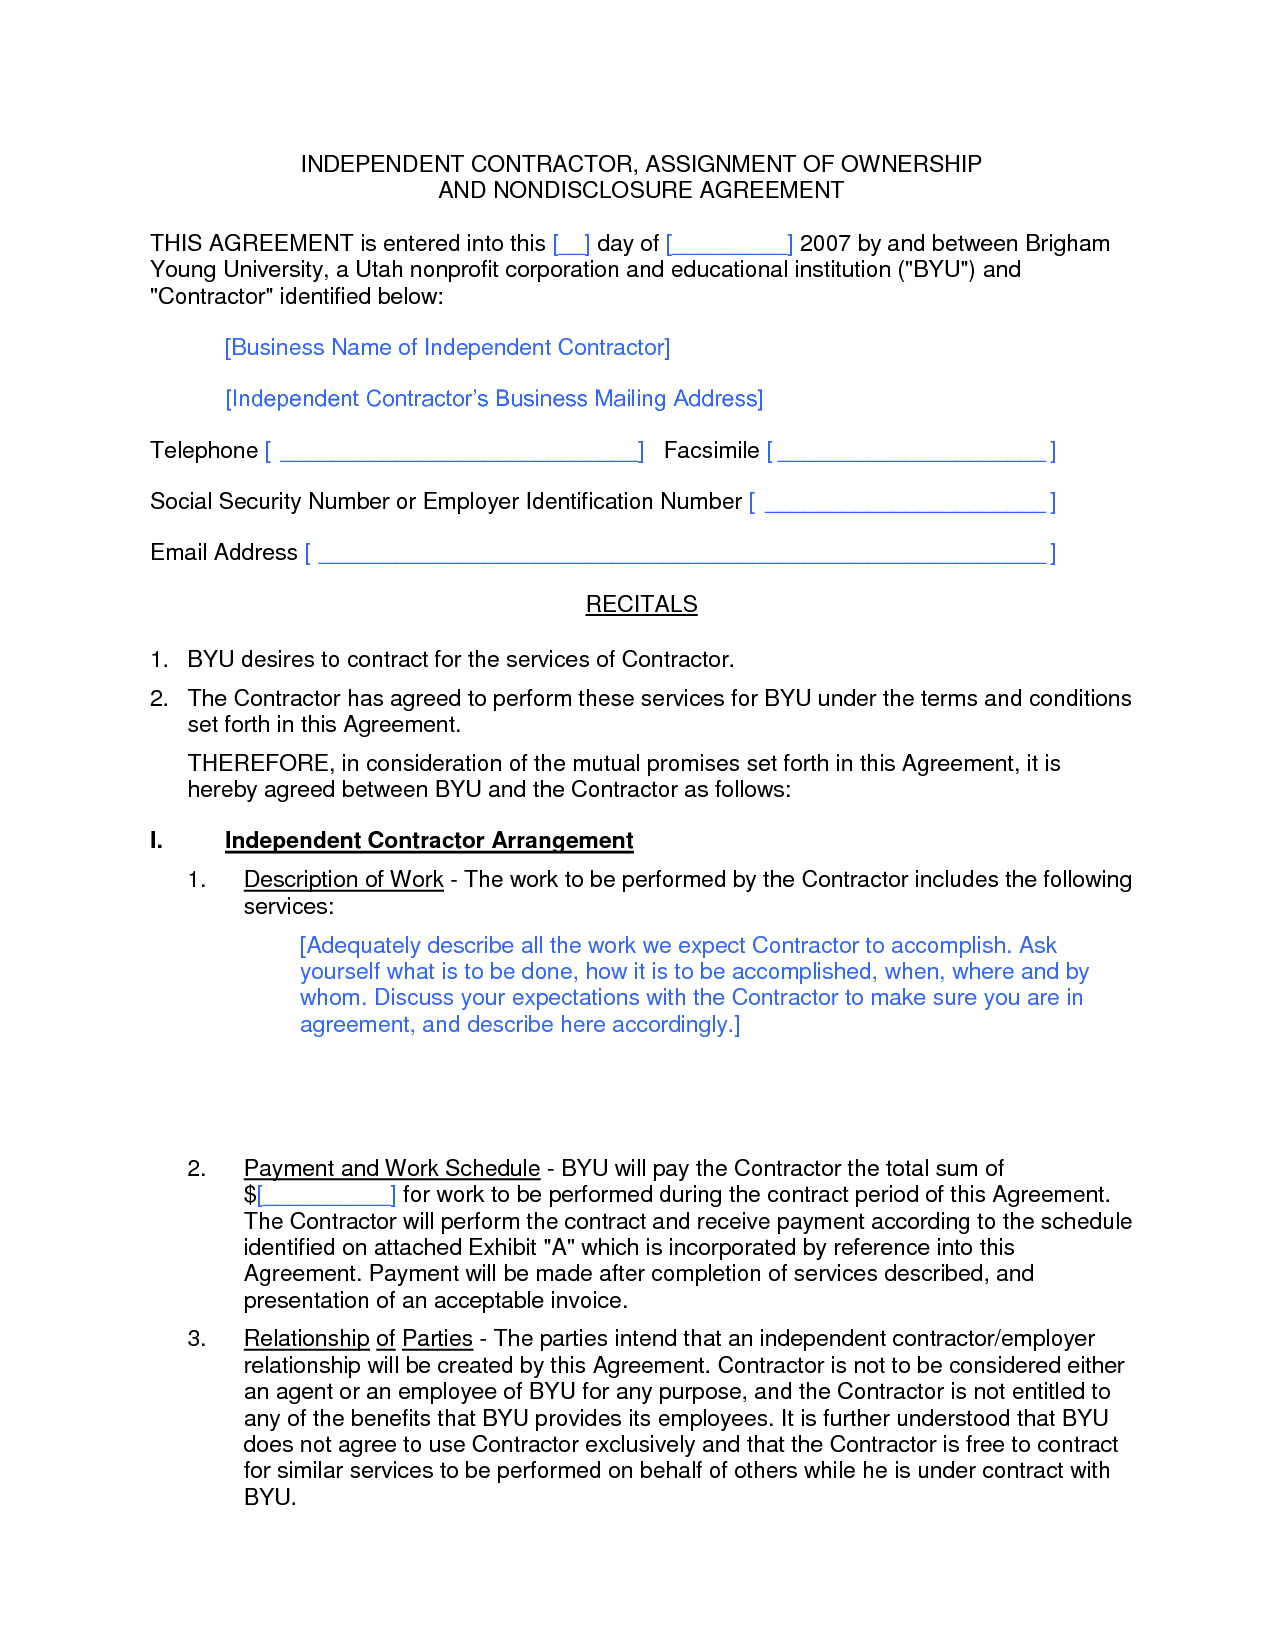 1099 Forms For Independent Contractors